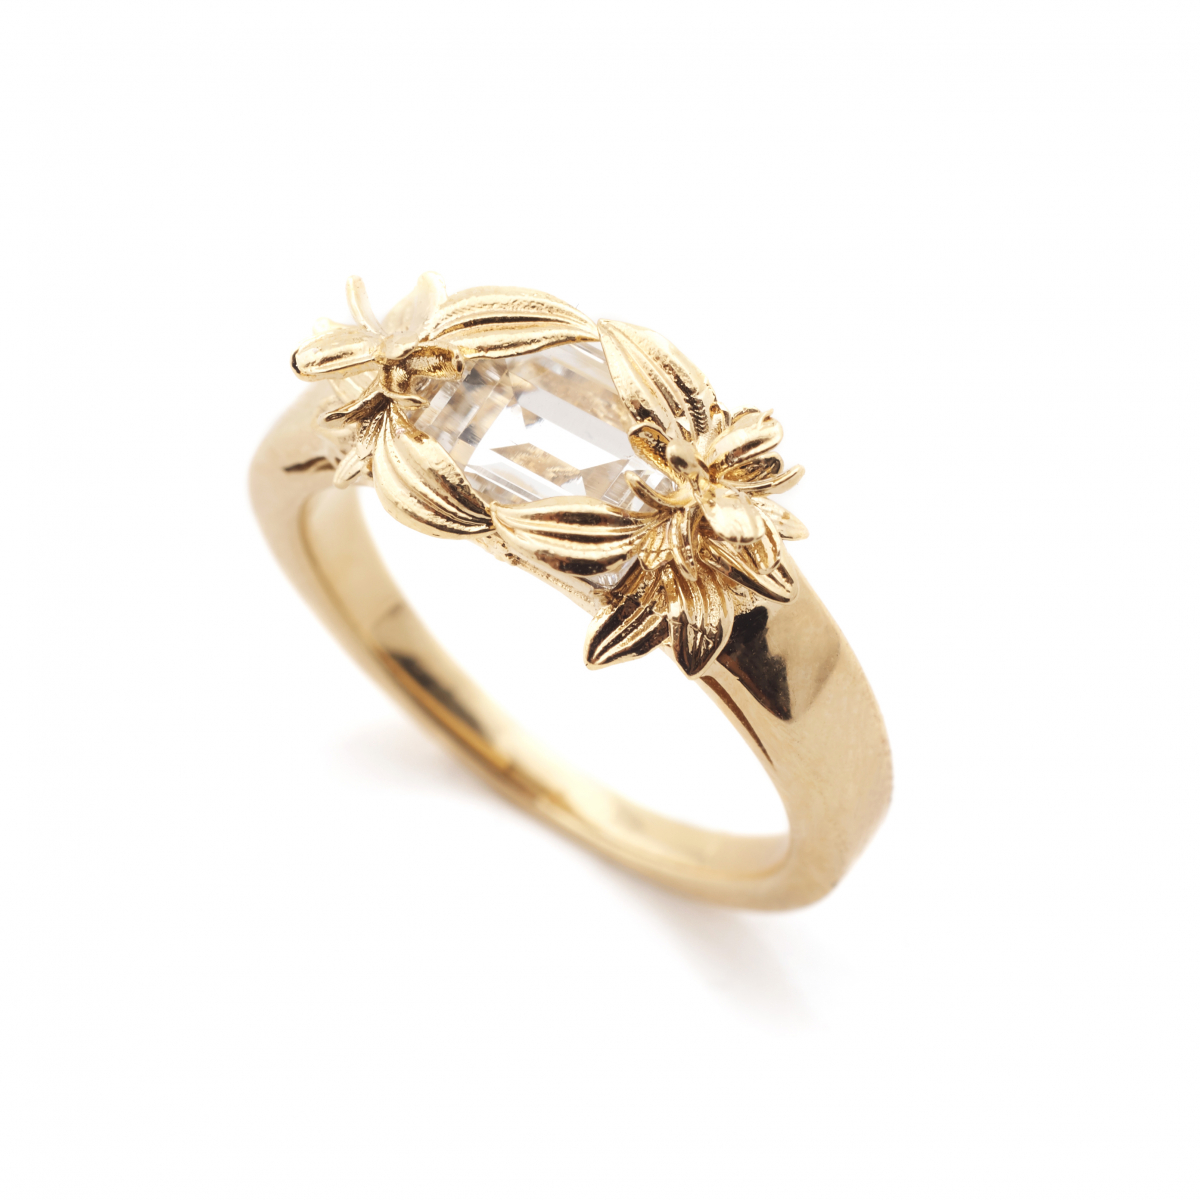 The Evelyn Edit Crystal Ring